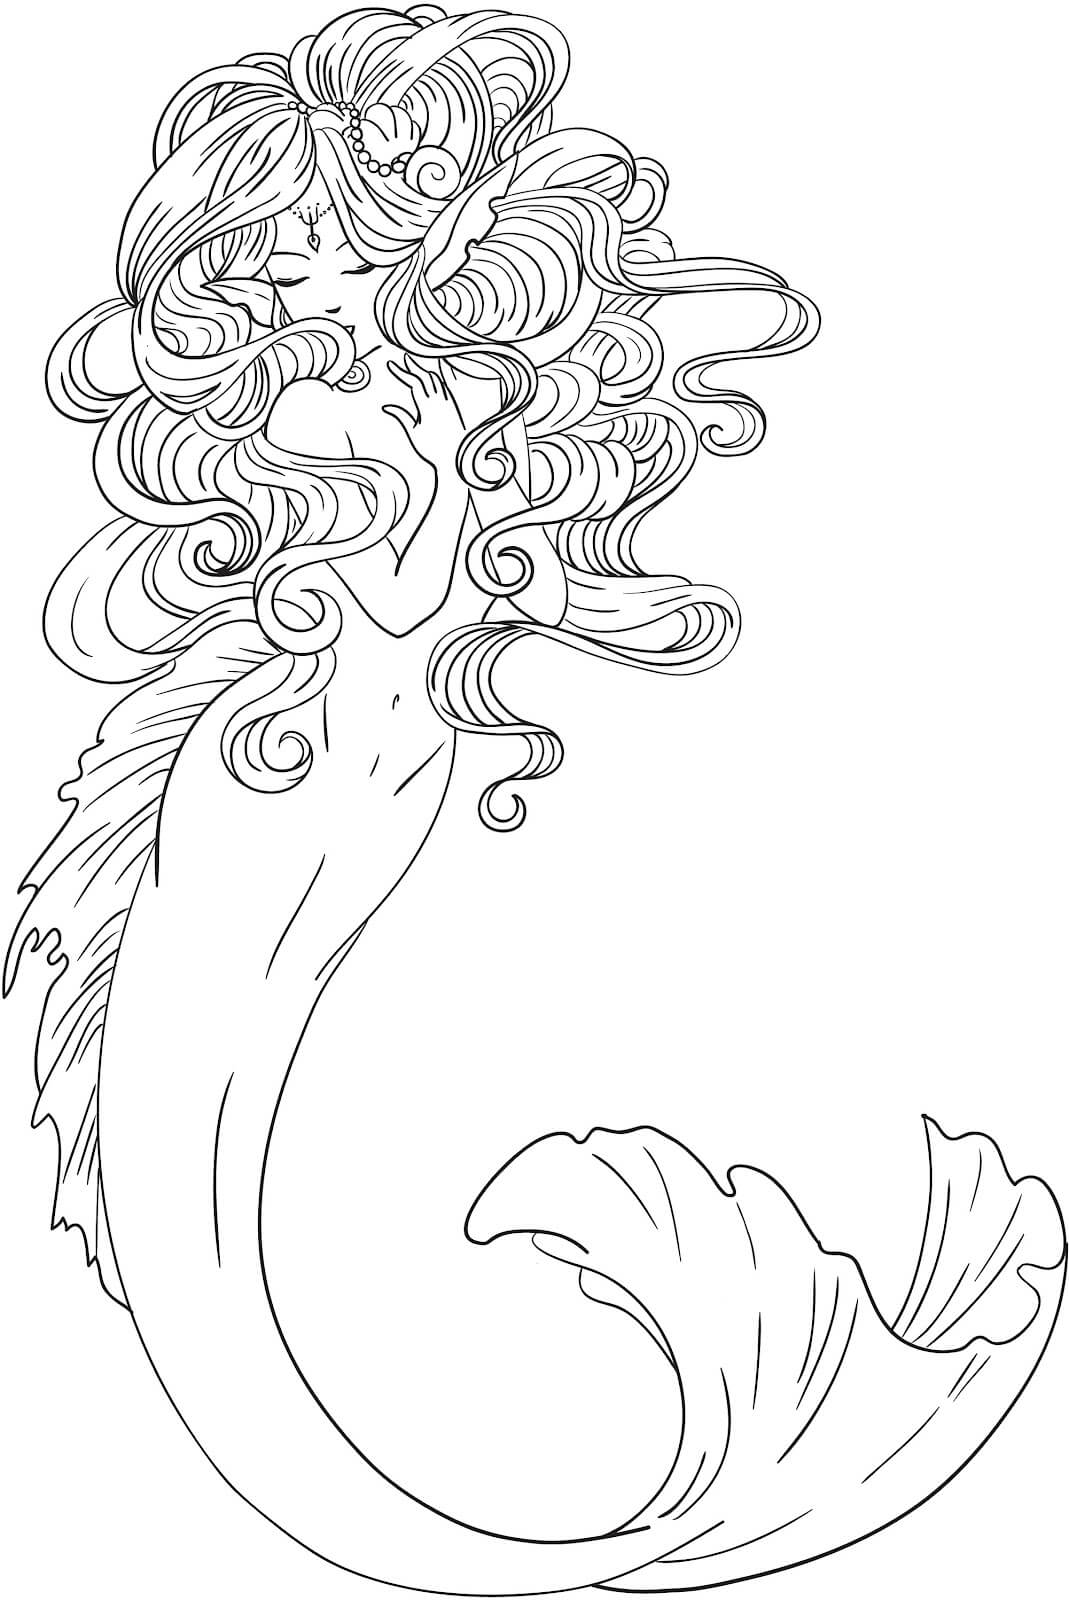 mermaid coloring pages - photo#6